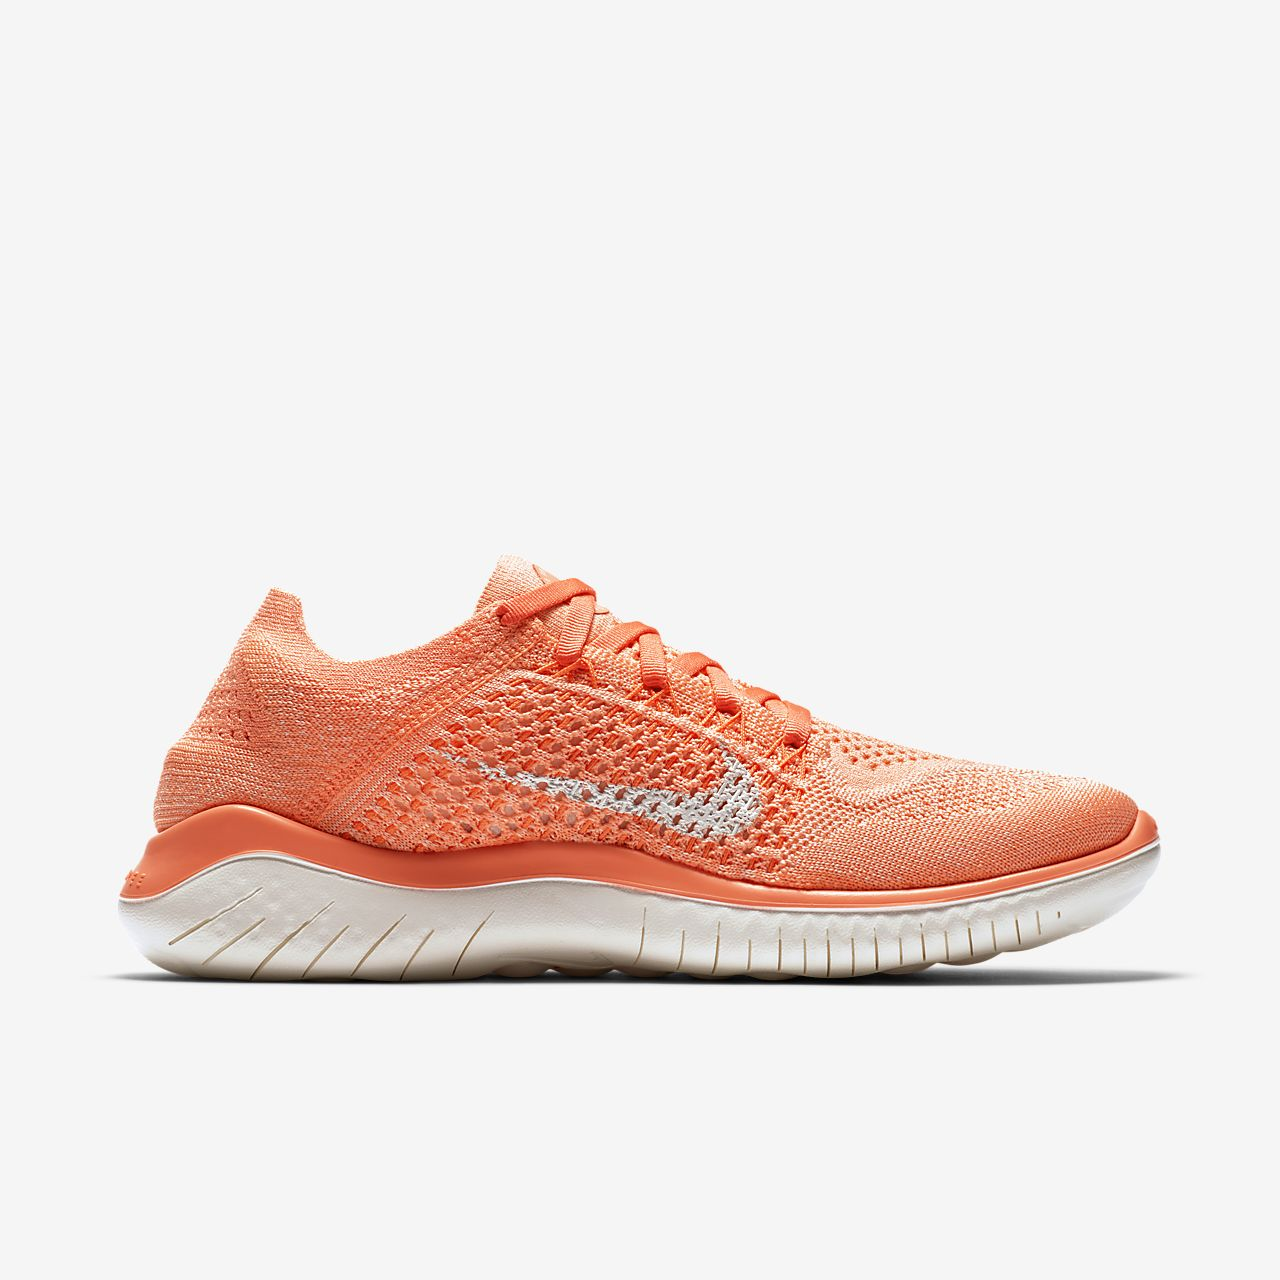 Nike Chaussures Femme Flyknit 2018 Calendrier profiter à vendre 8NWVEzkrN